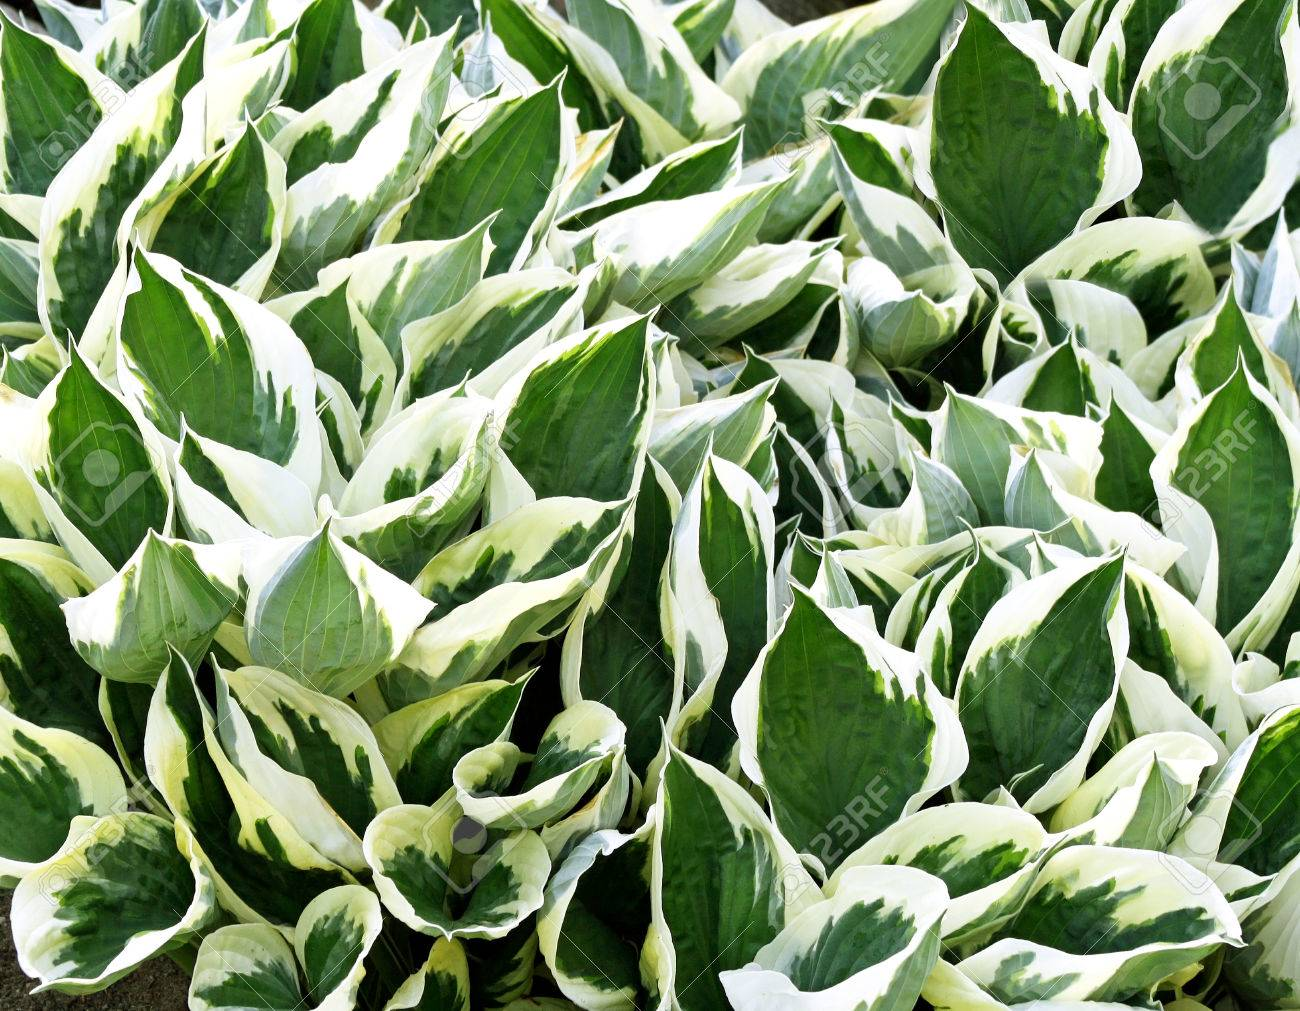 Variegated Green And White Leaves Of The Hosta Plant A Garden